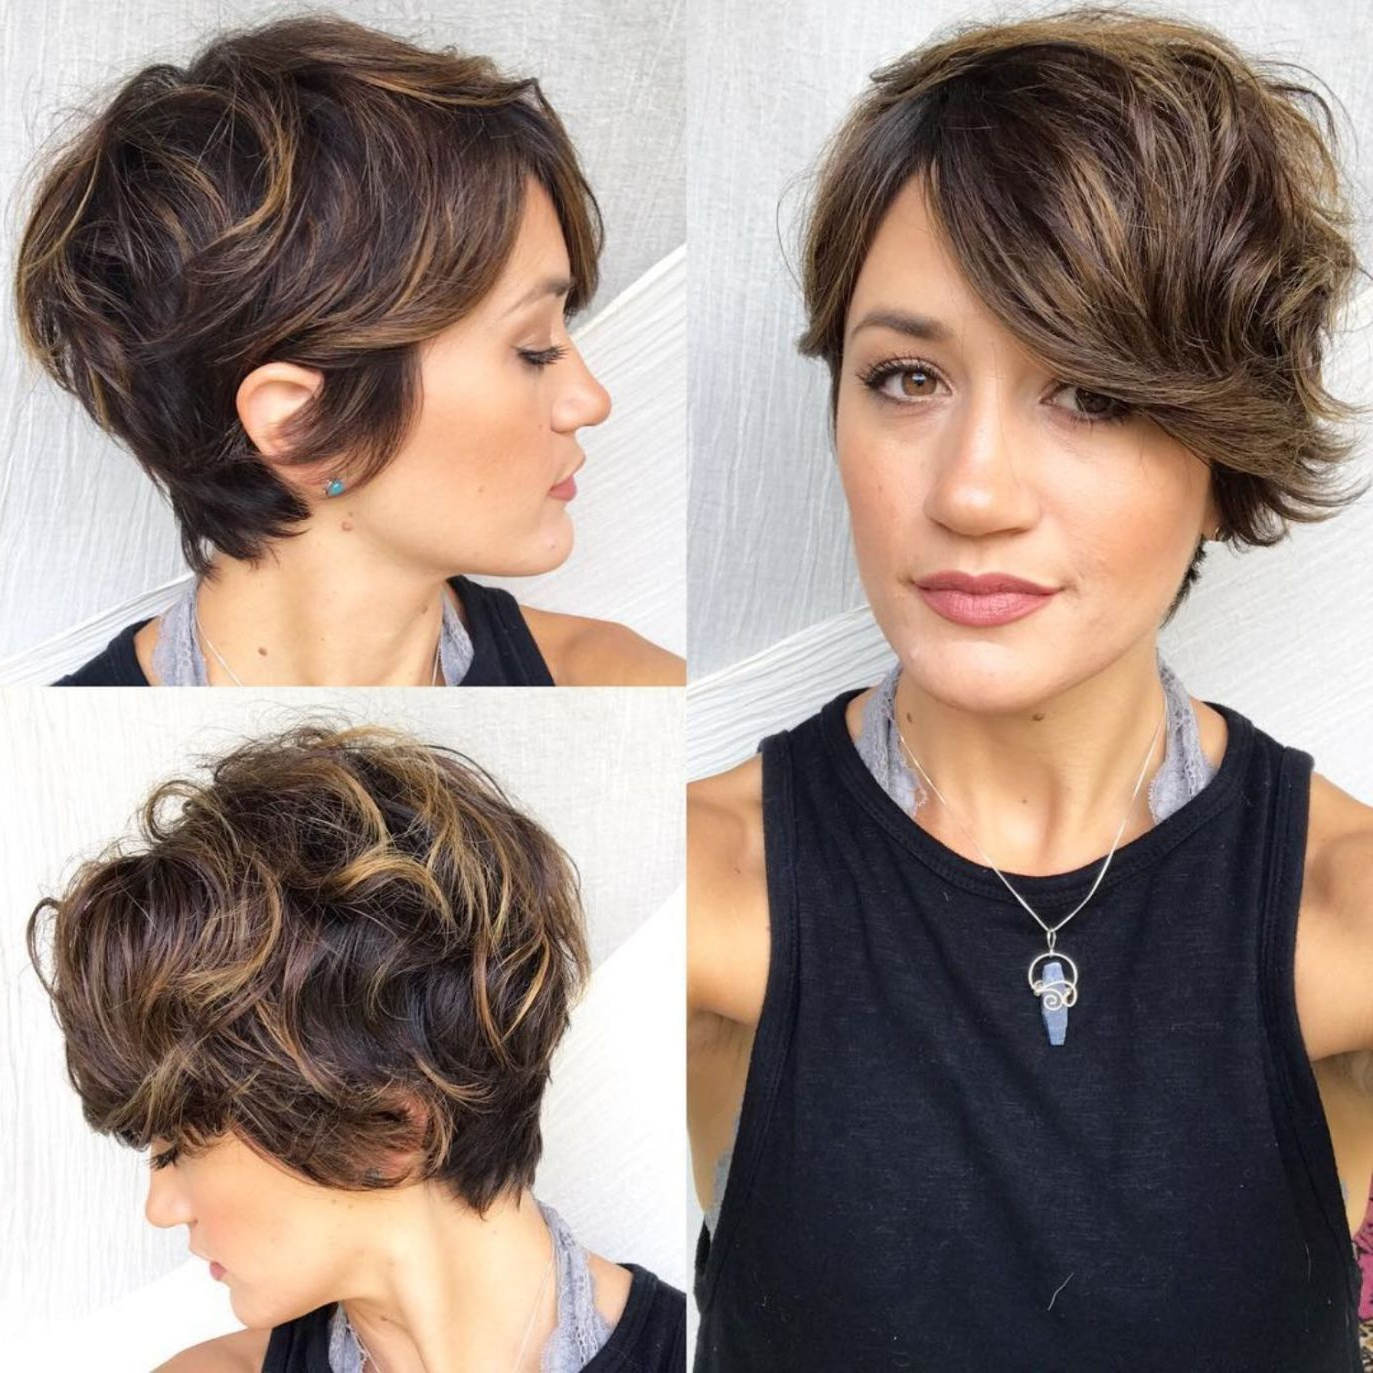 60 Short Shag Hairstyles That You Simply Can't Miss In Curly Pixie Haircuts With Highlights (View 10 of 20)